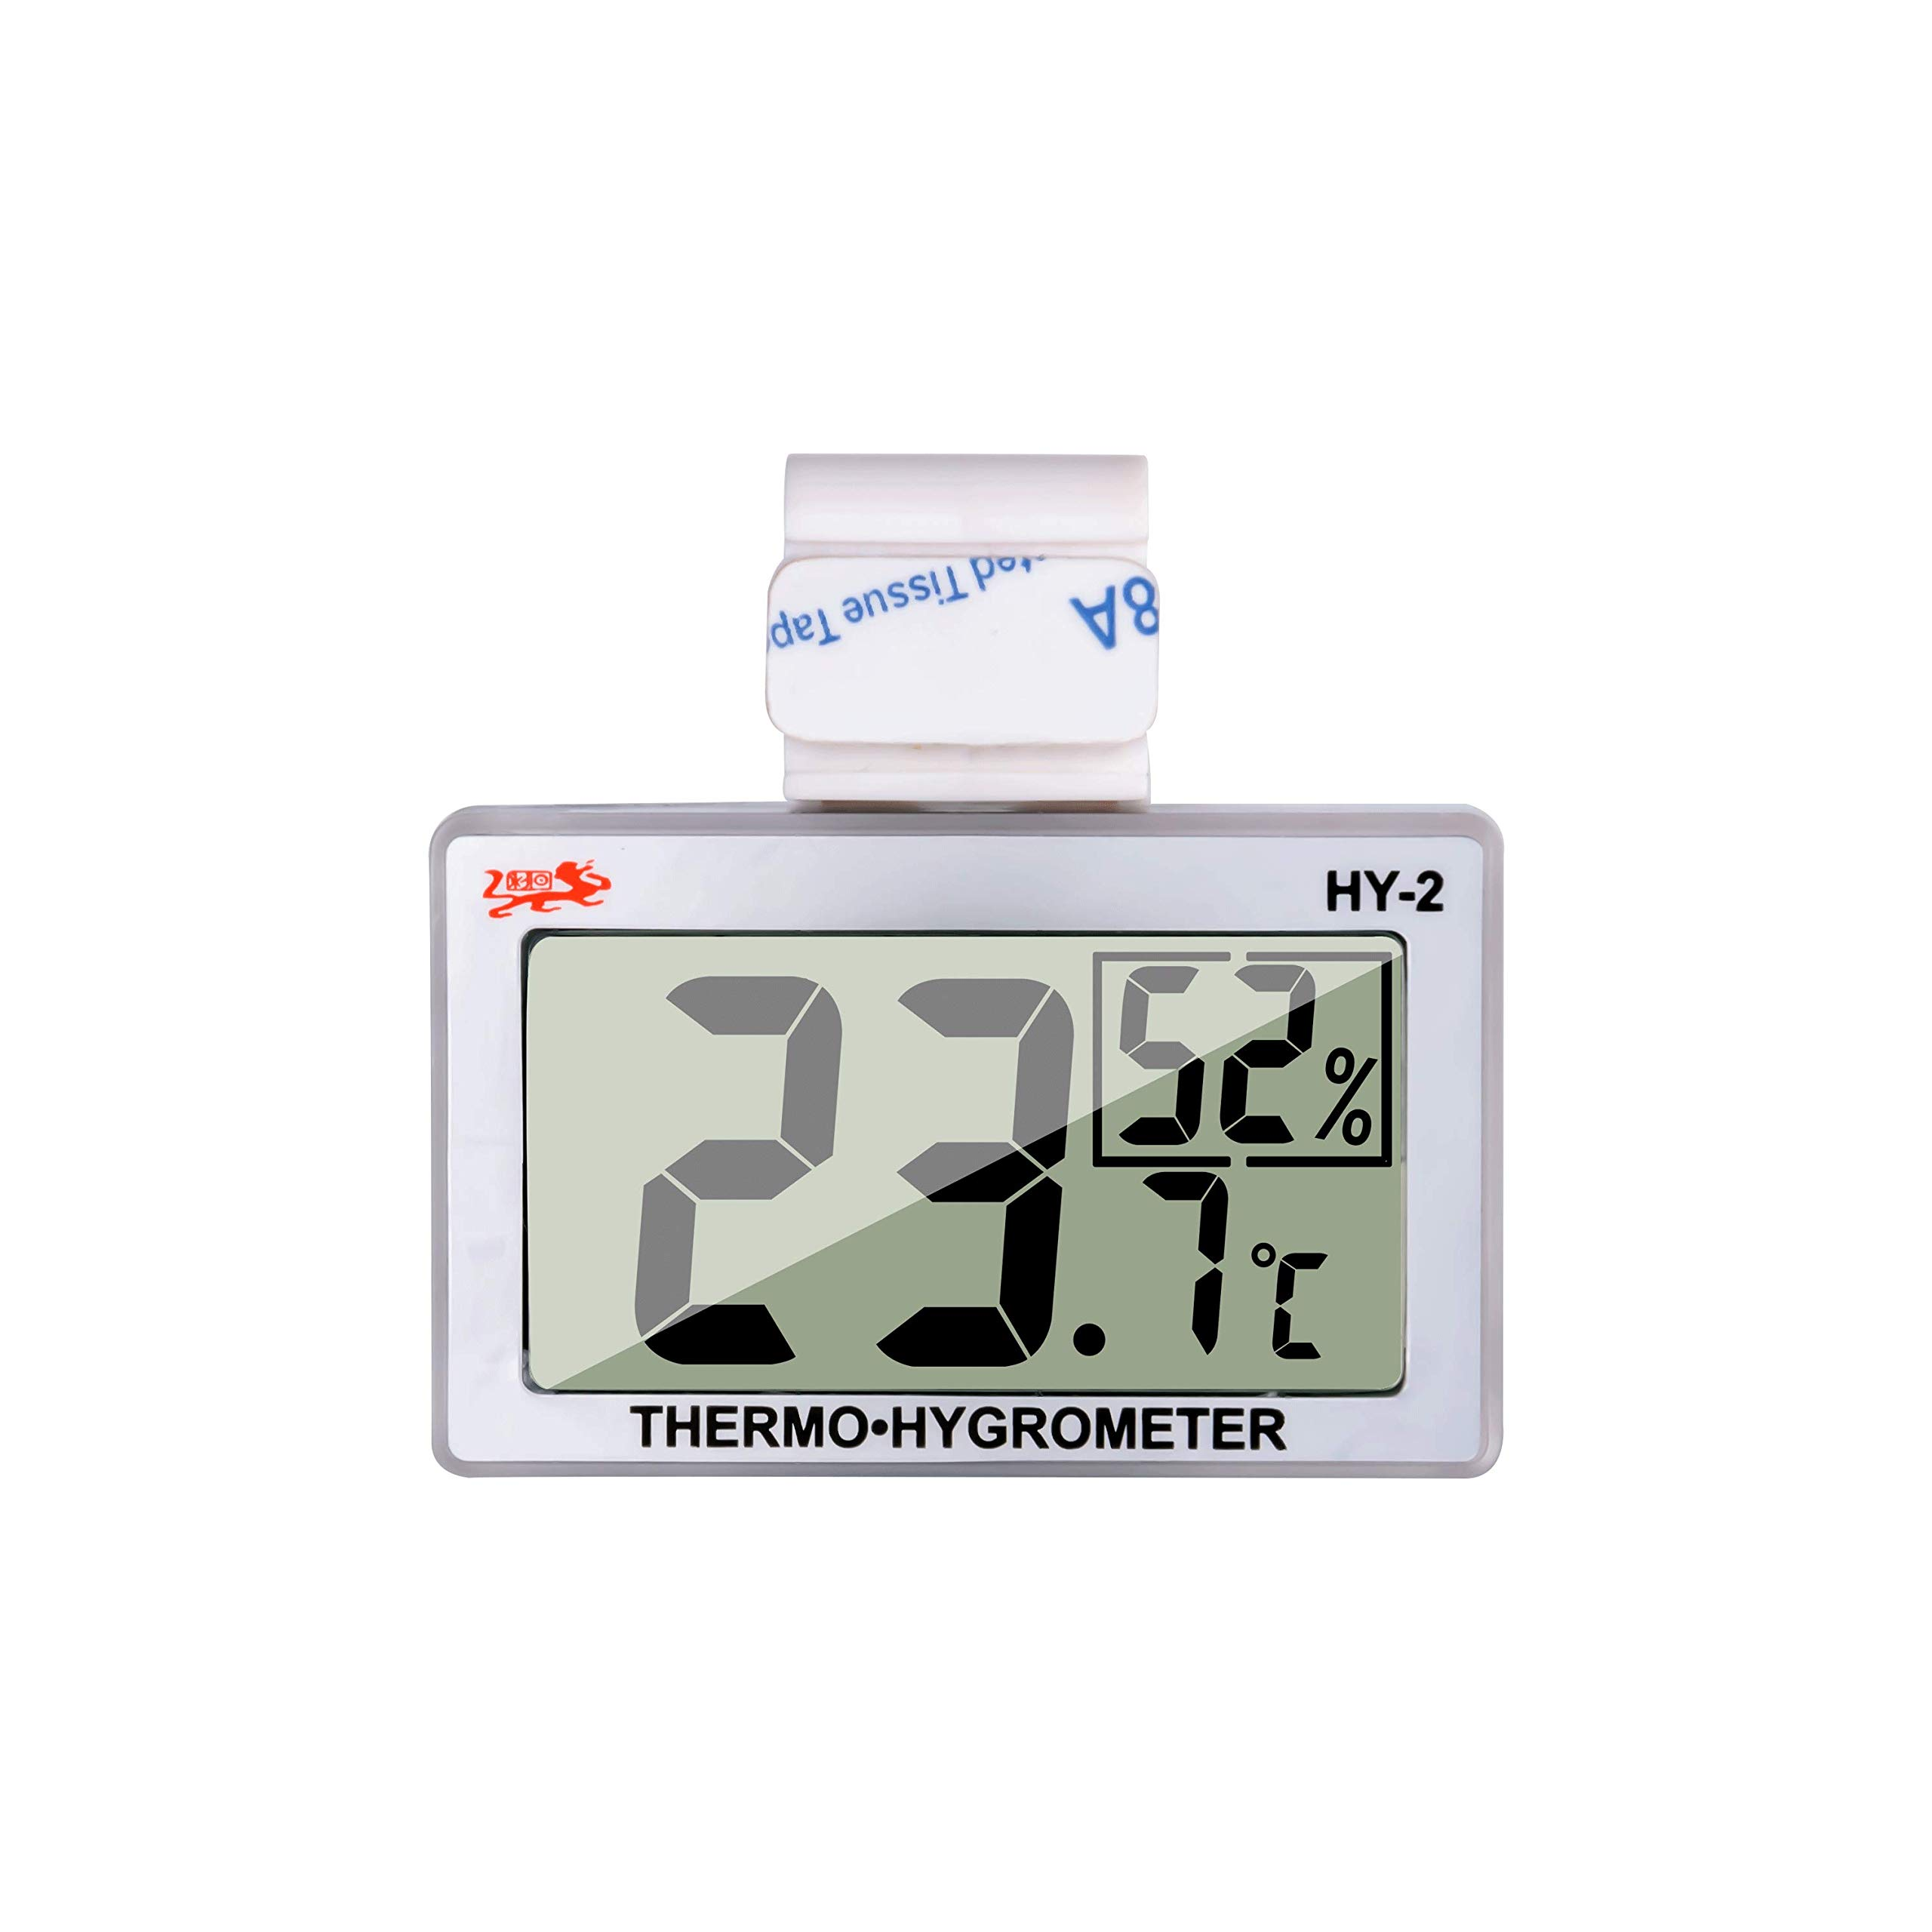 Reptile Thermometer Humidity and Temperature Sensor Gauges Reptile Digital Thermometer Digital Reptile Tank Thermometer Hygrometer with Hook and Velcro Ideal for Reptile Tanks, Terrariums, Vivariums by JLENOVEG